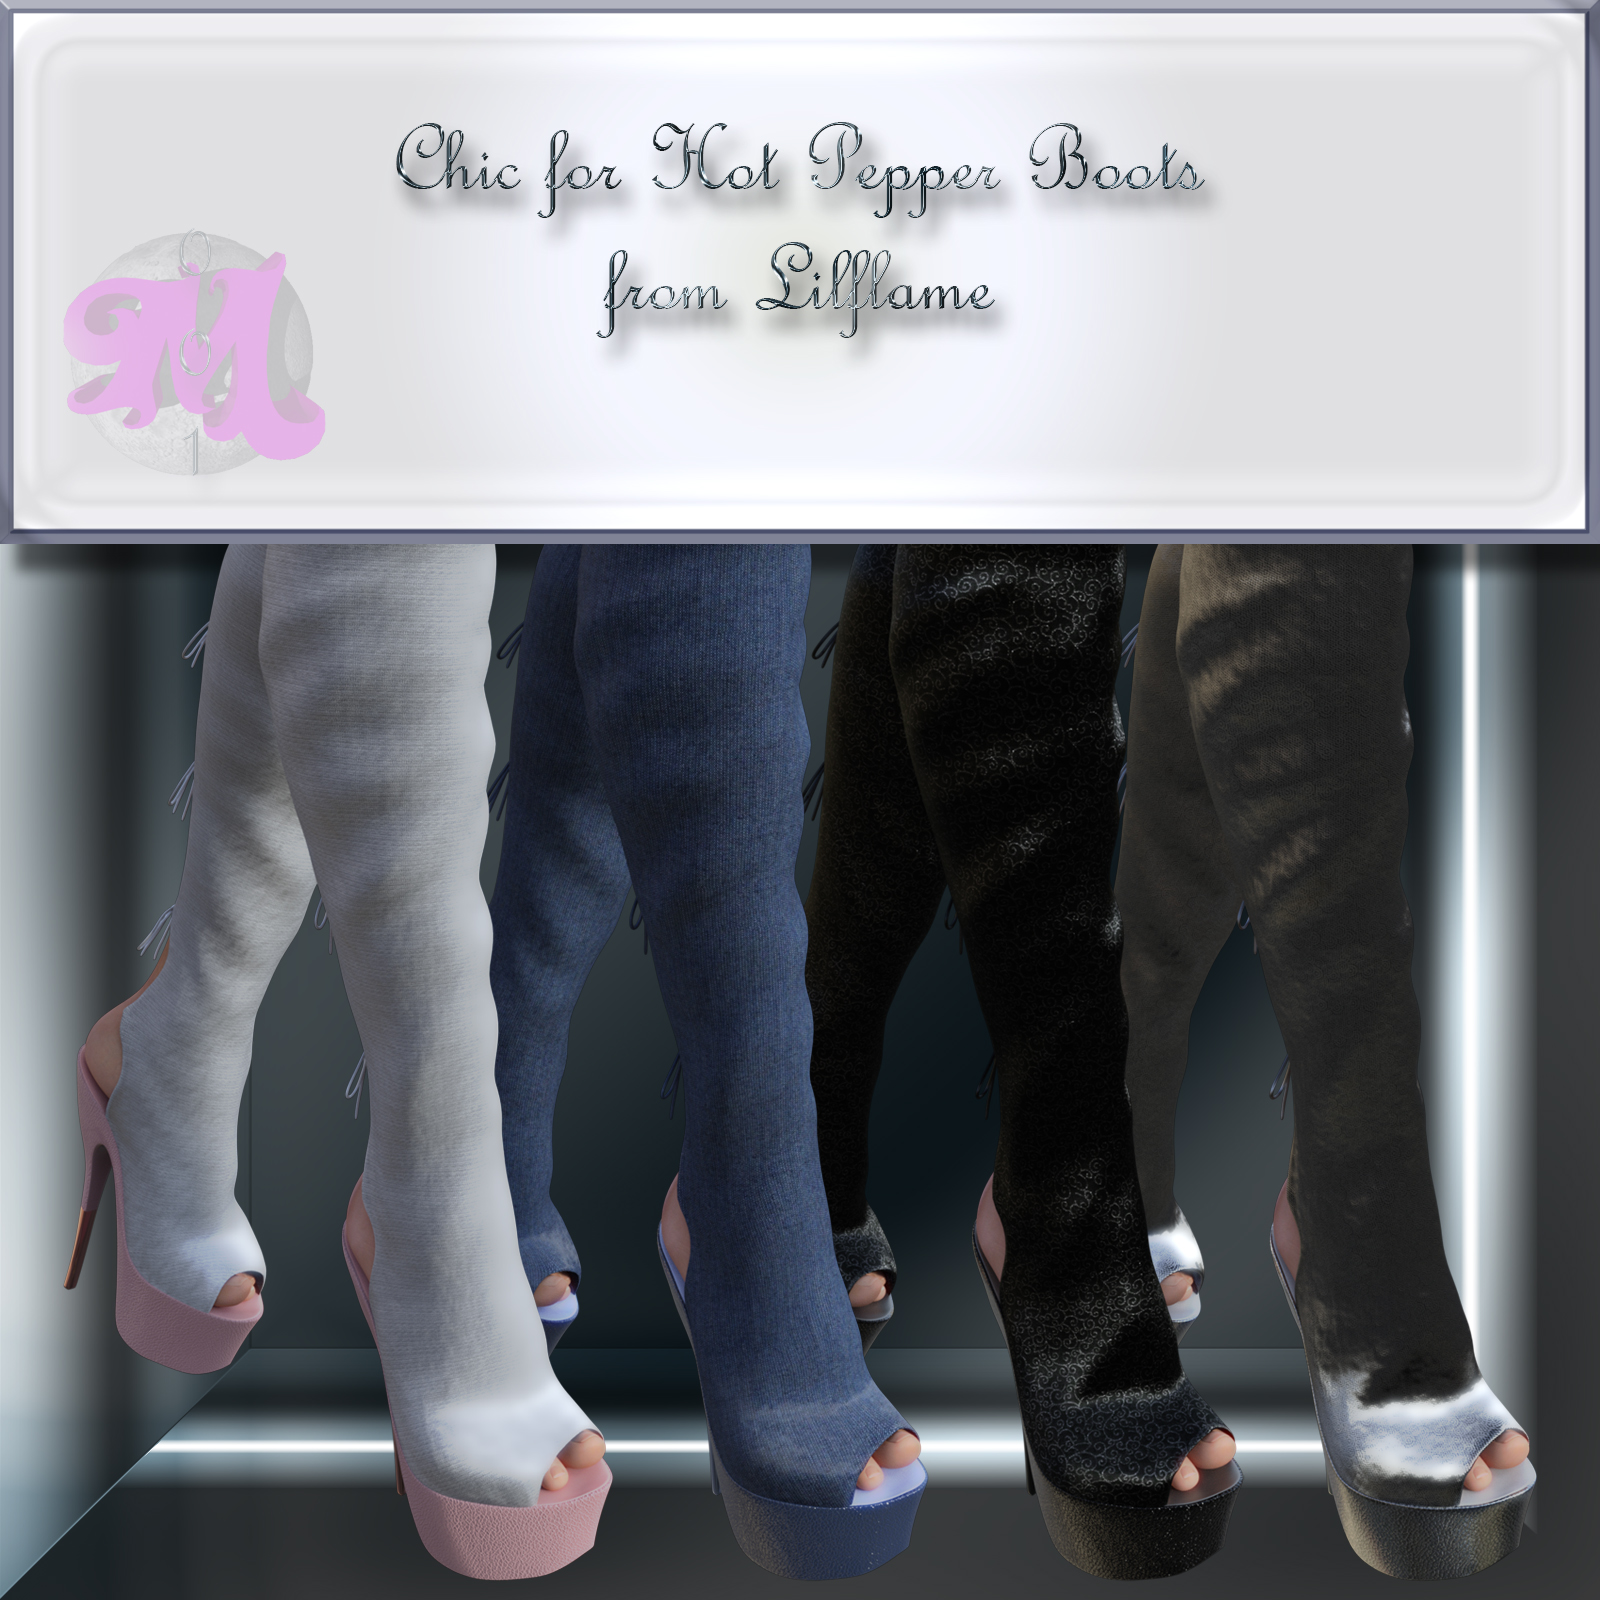 Chic for Hot Pepper Boots by Moonlight001